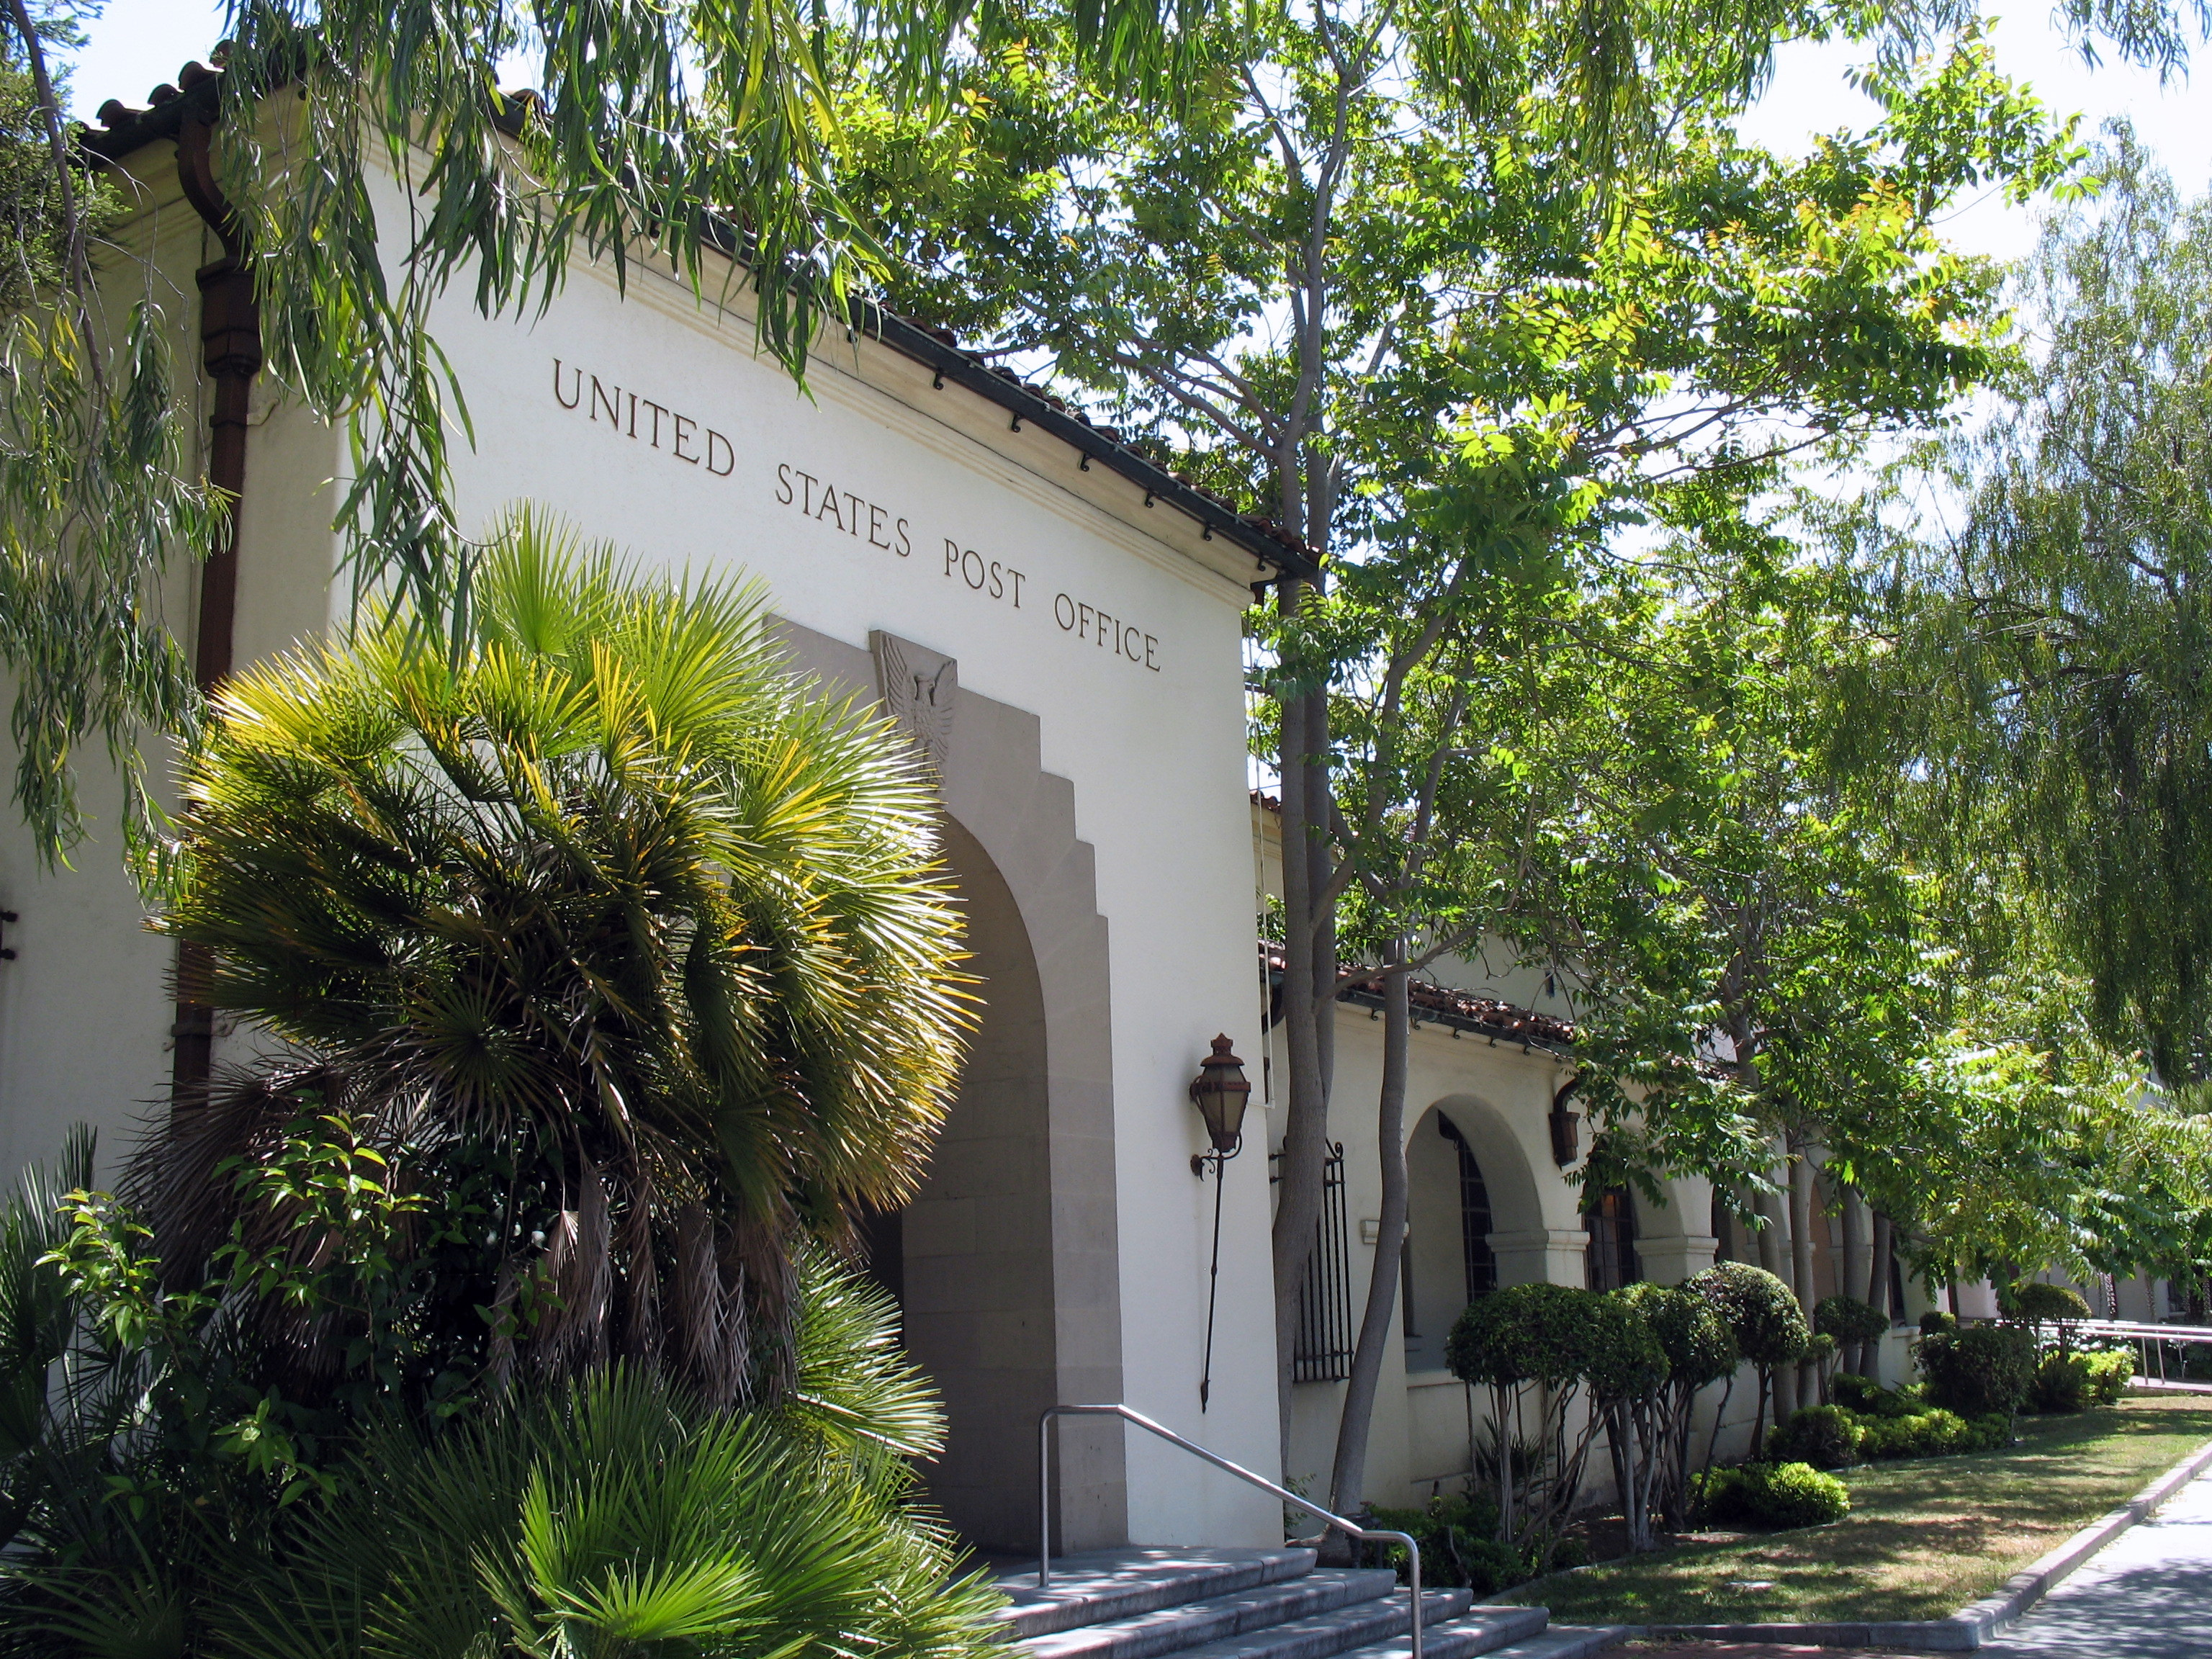 Local flora and fauna surround the U.S. Post Office building in Palo Alto.